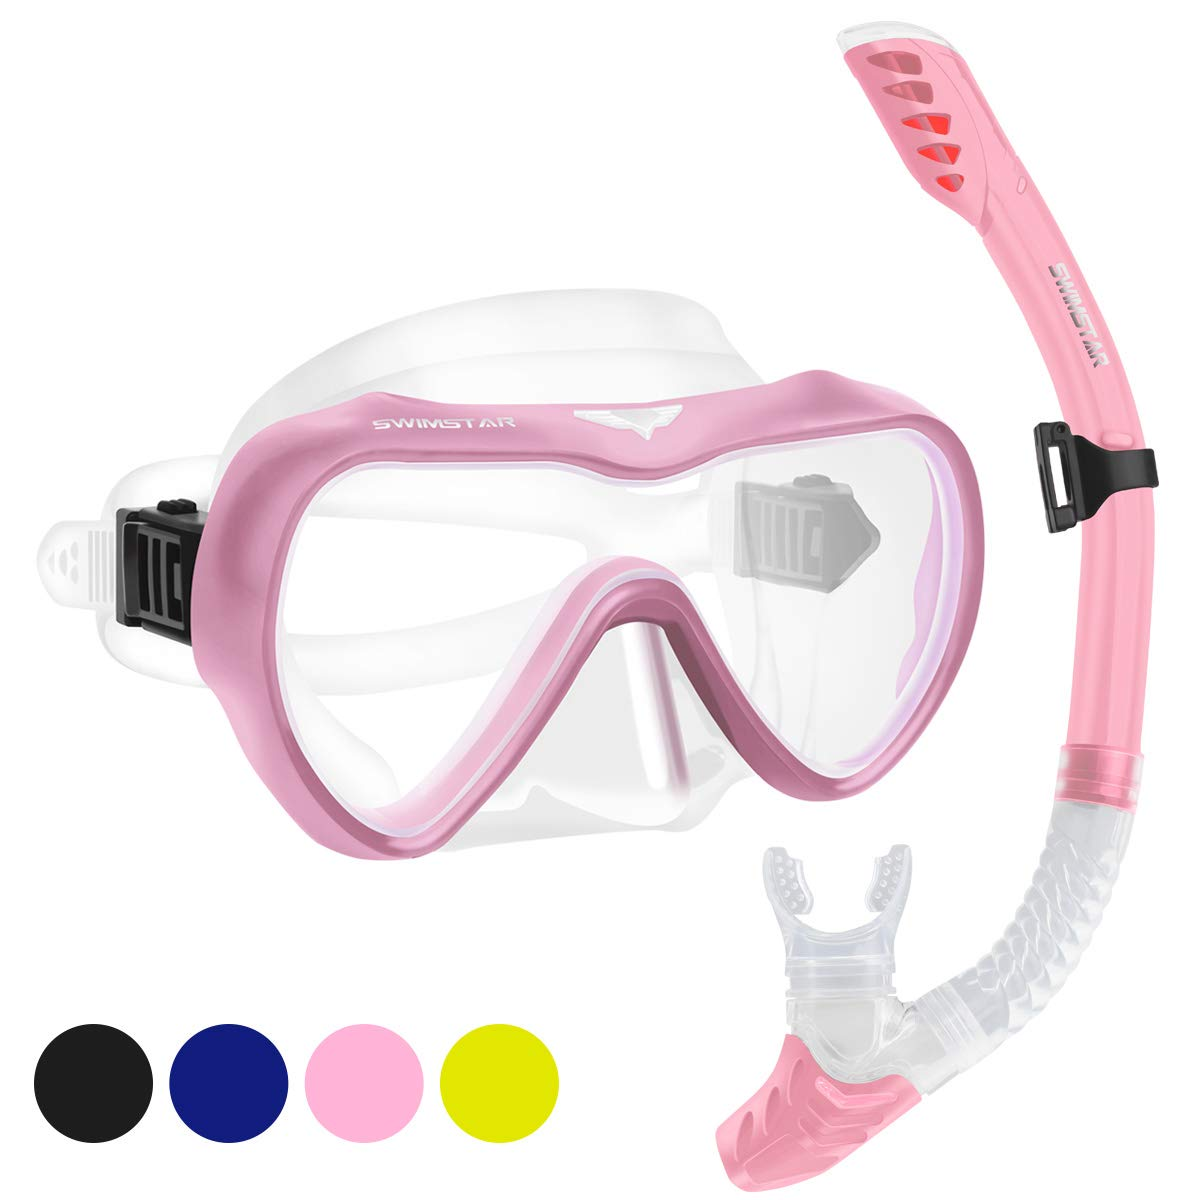 2019 Snorkel Set for Women and Men, Anti-Fog Tempered Glass Snorkel Mask for Snorkeling, Swimming and Scuba Diving, Anti Leak Dry Top Snorkel Gear Panoramic Silicone Goggle No Leak Pink